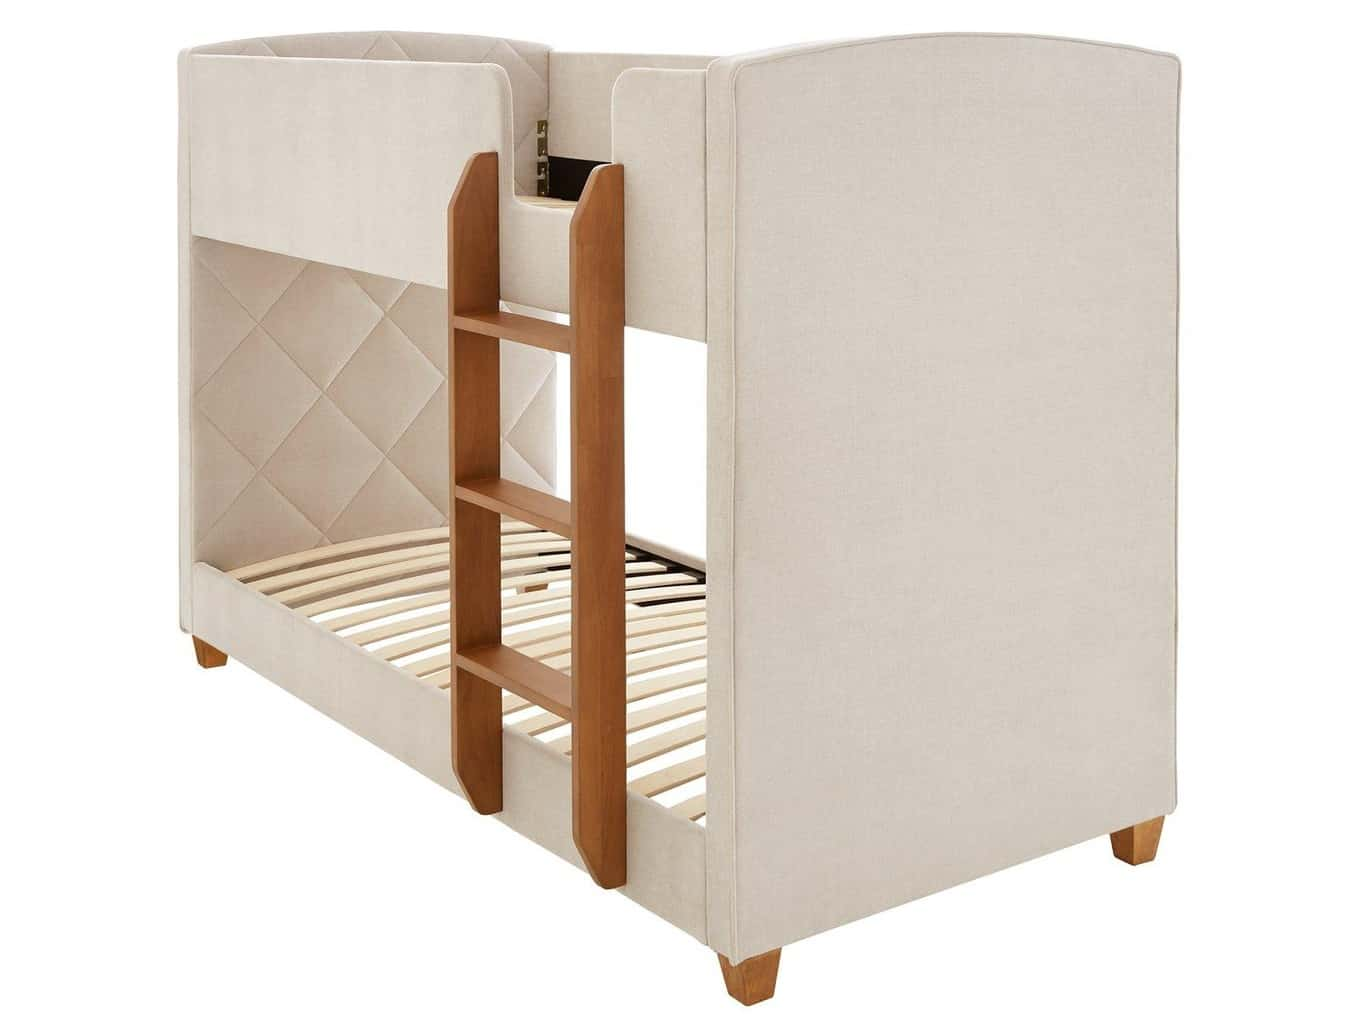 Fabric upholstered bed with fixed wooden ladder